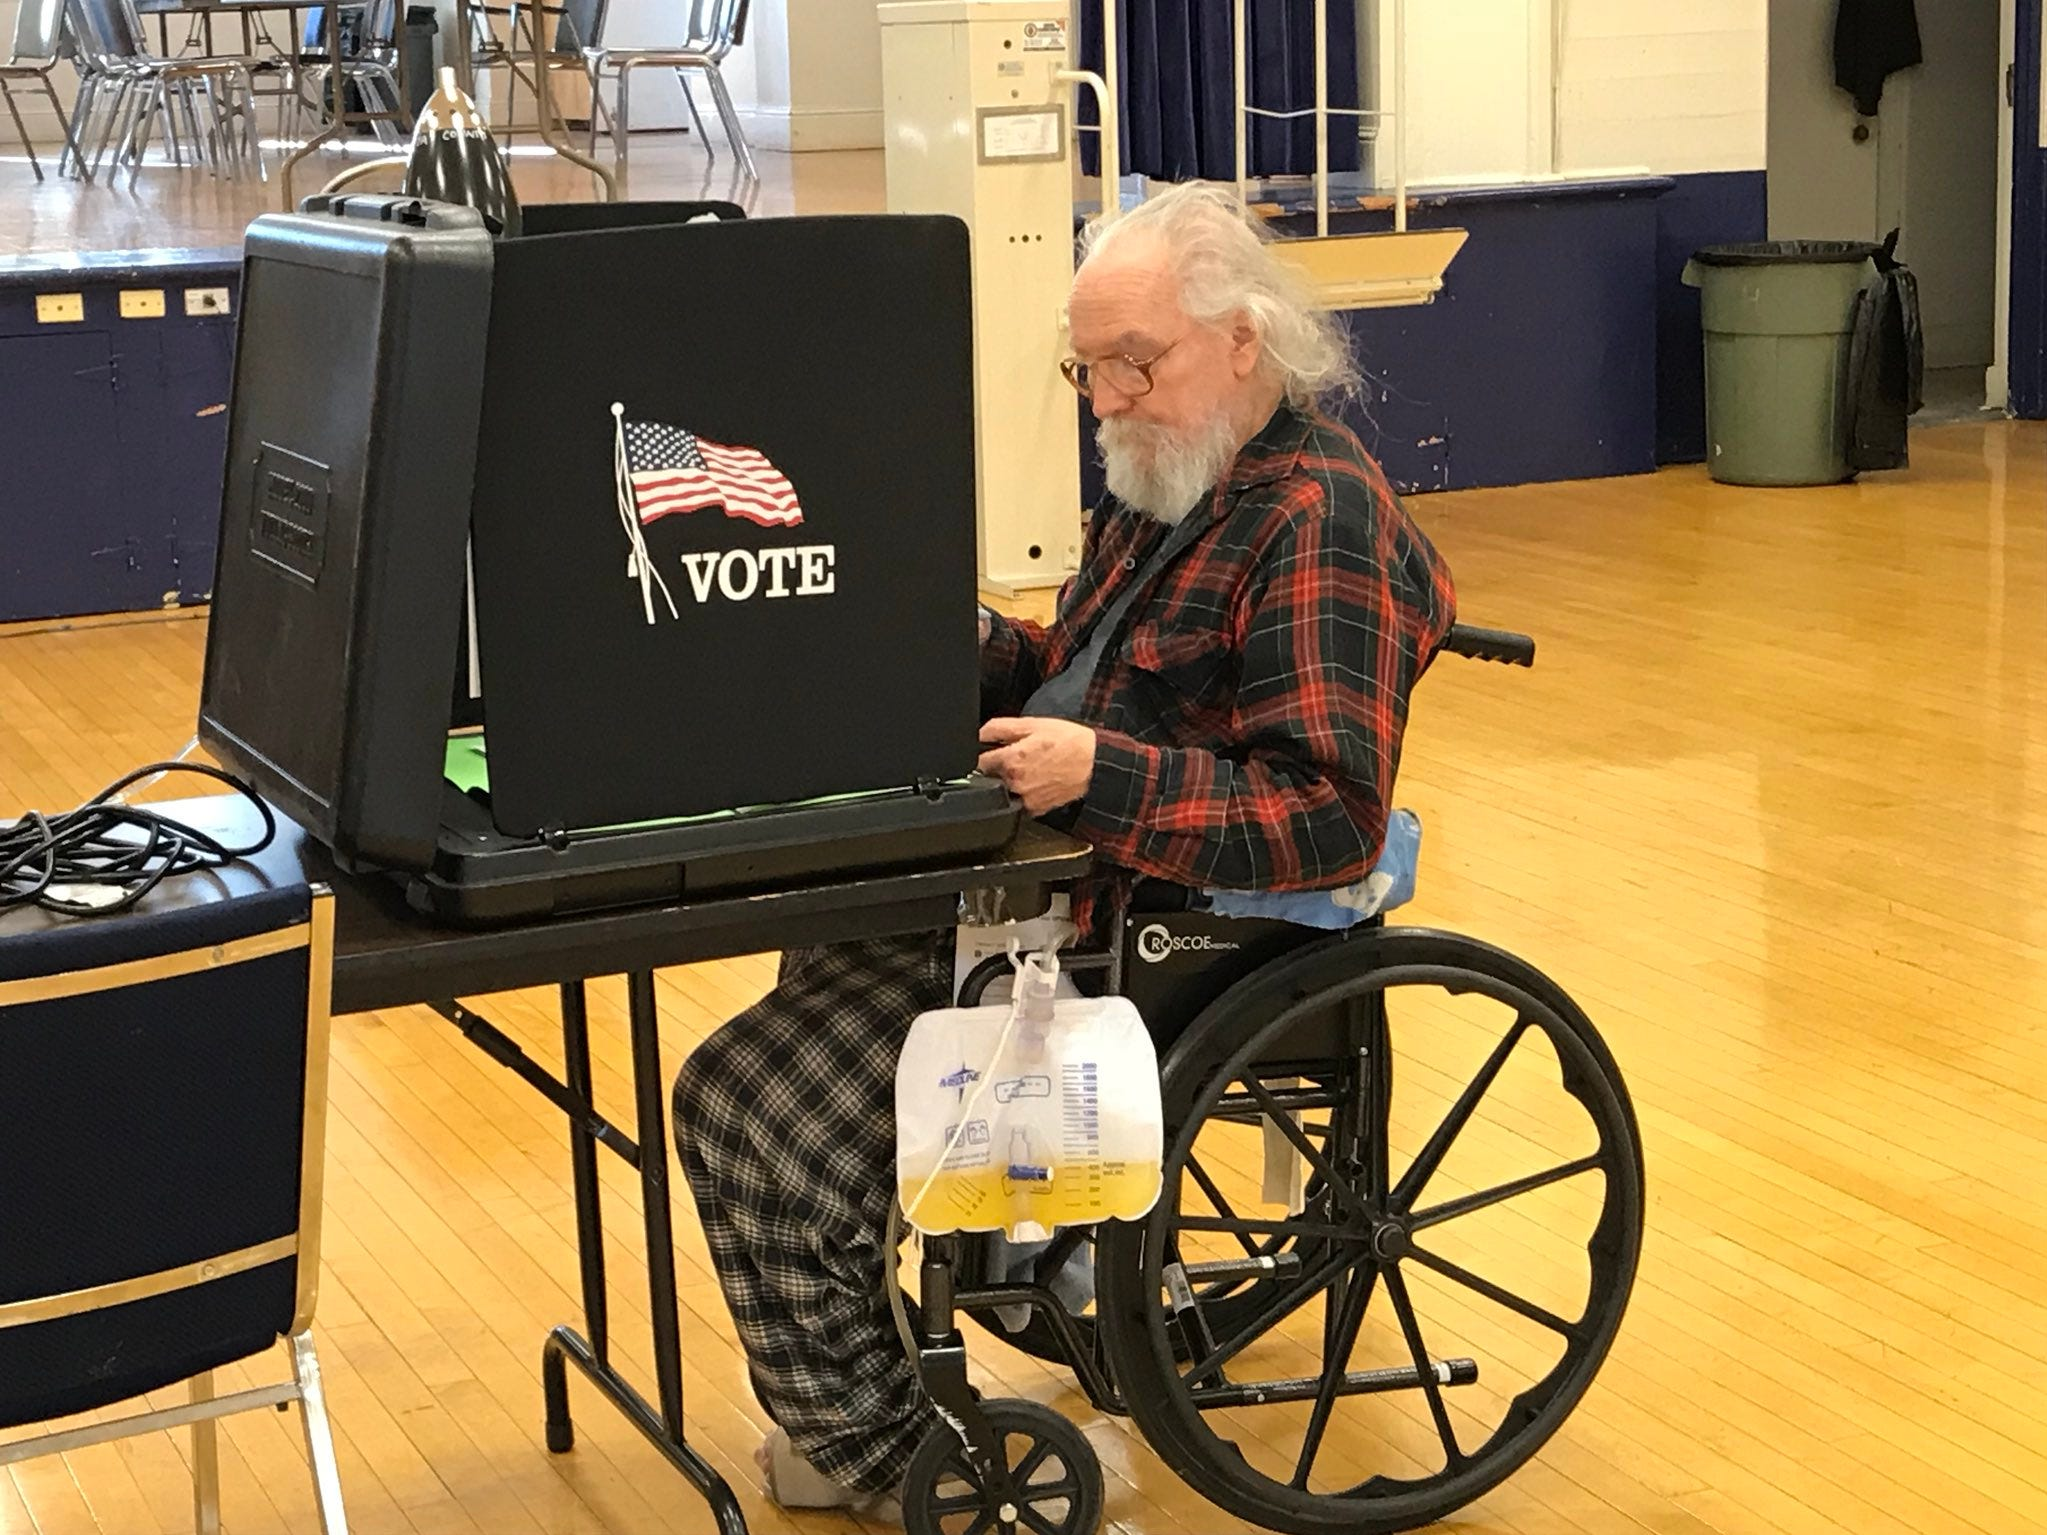 Jerry S. Moore, 71, of Redding makes his election choices on Tuesday, Nov. 6, 2018 at the Redding Veterans Hall on Yuba Street in downtown Redding.